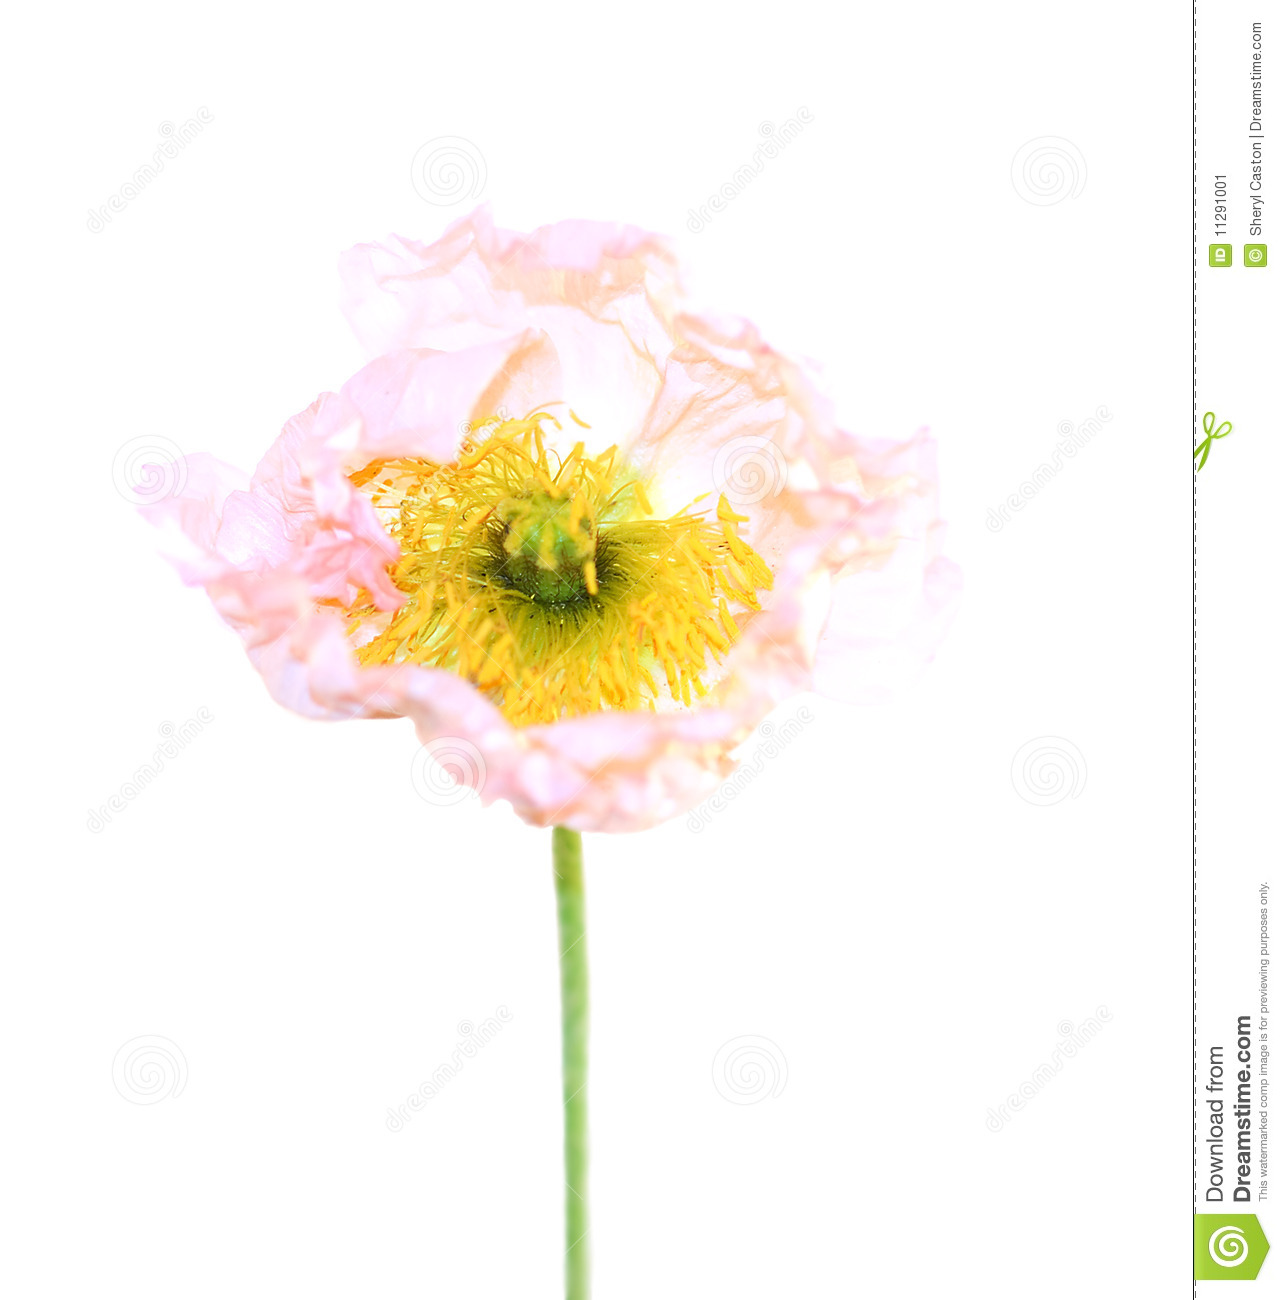 Poppy flower symbol of remembrance stock image image 11291001 poppy flower symbol of remembrance buycottarizona